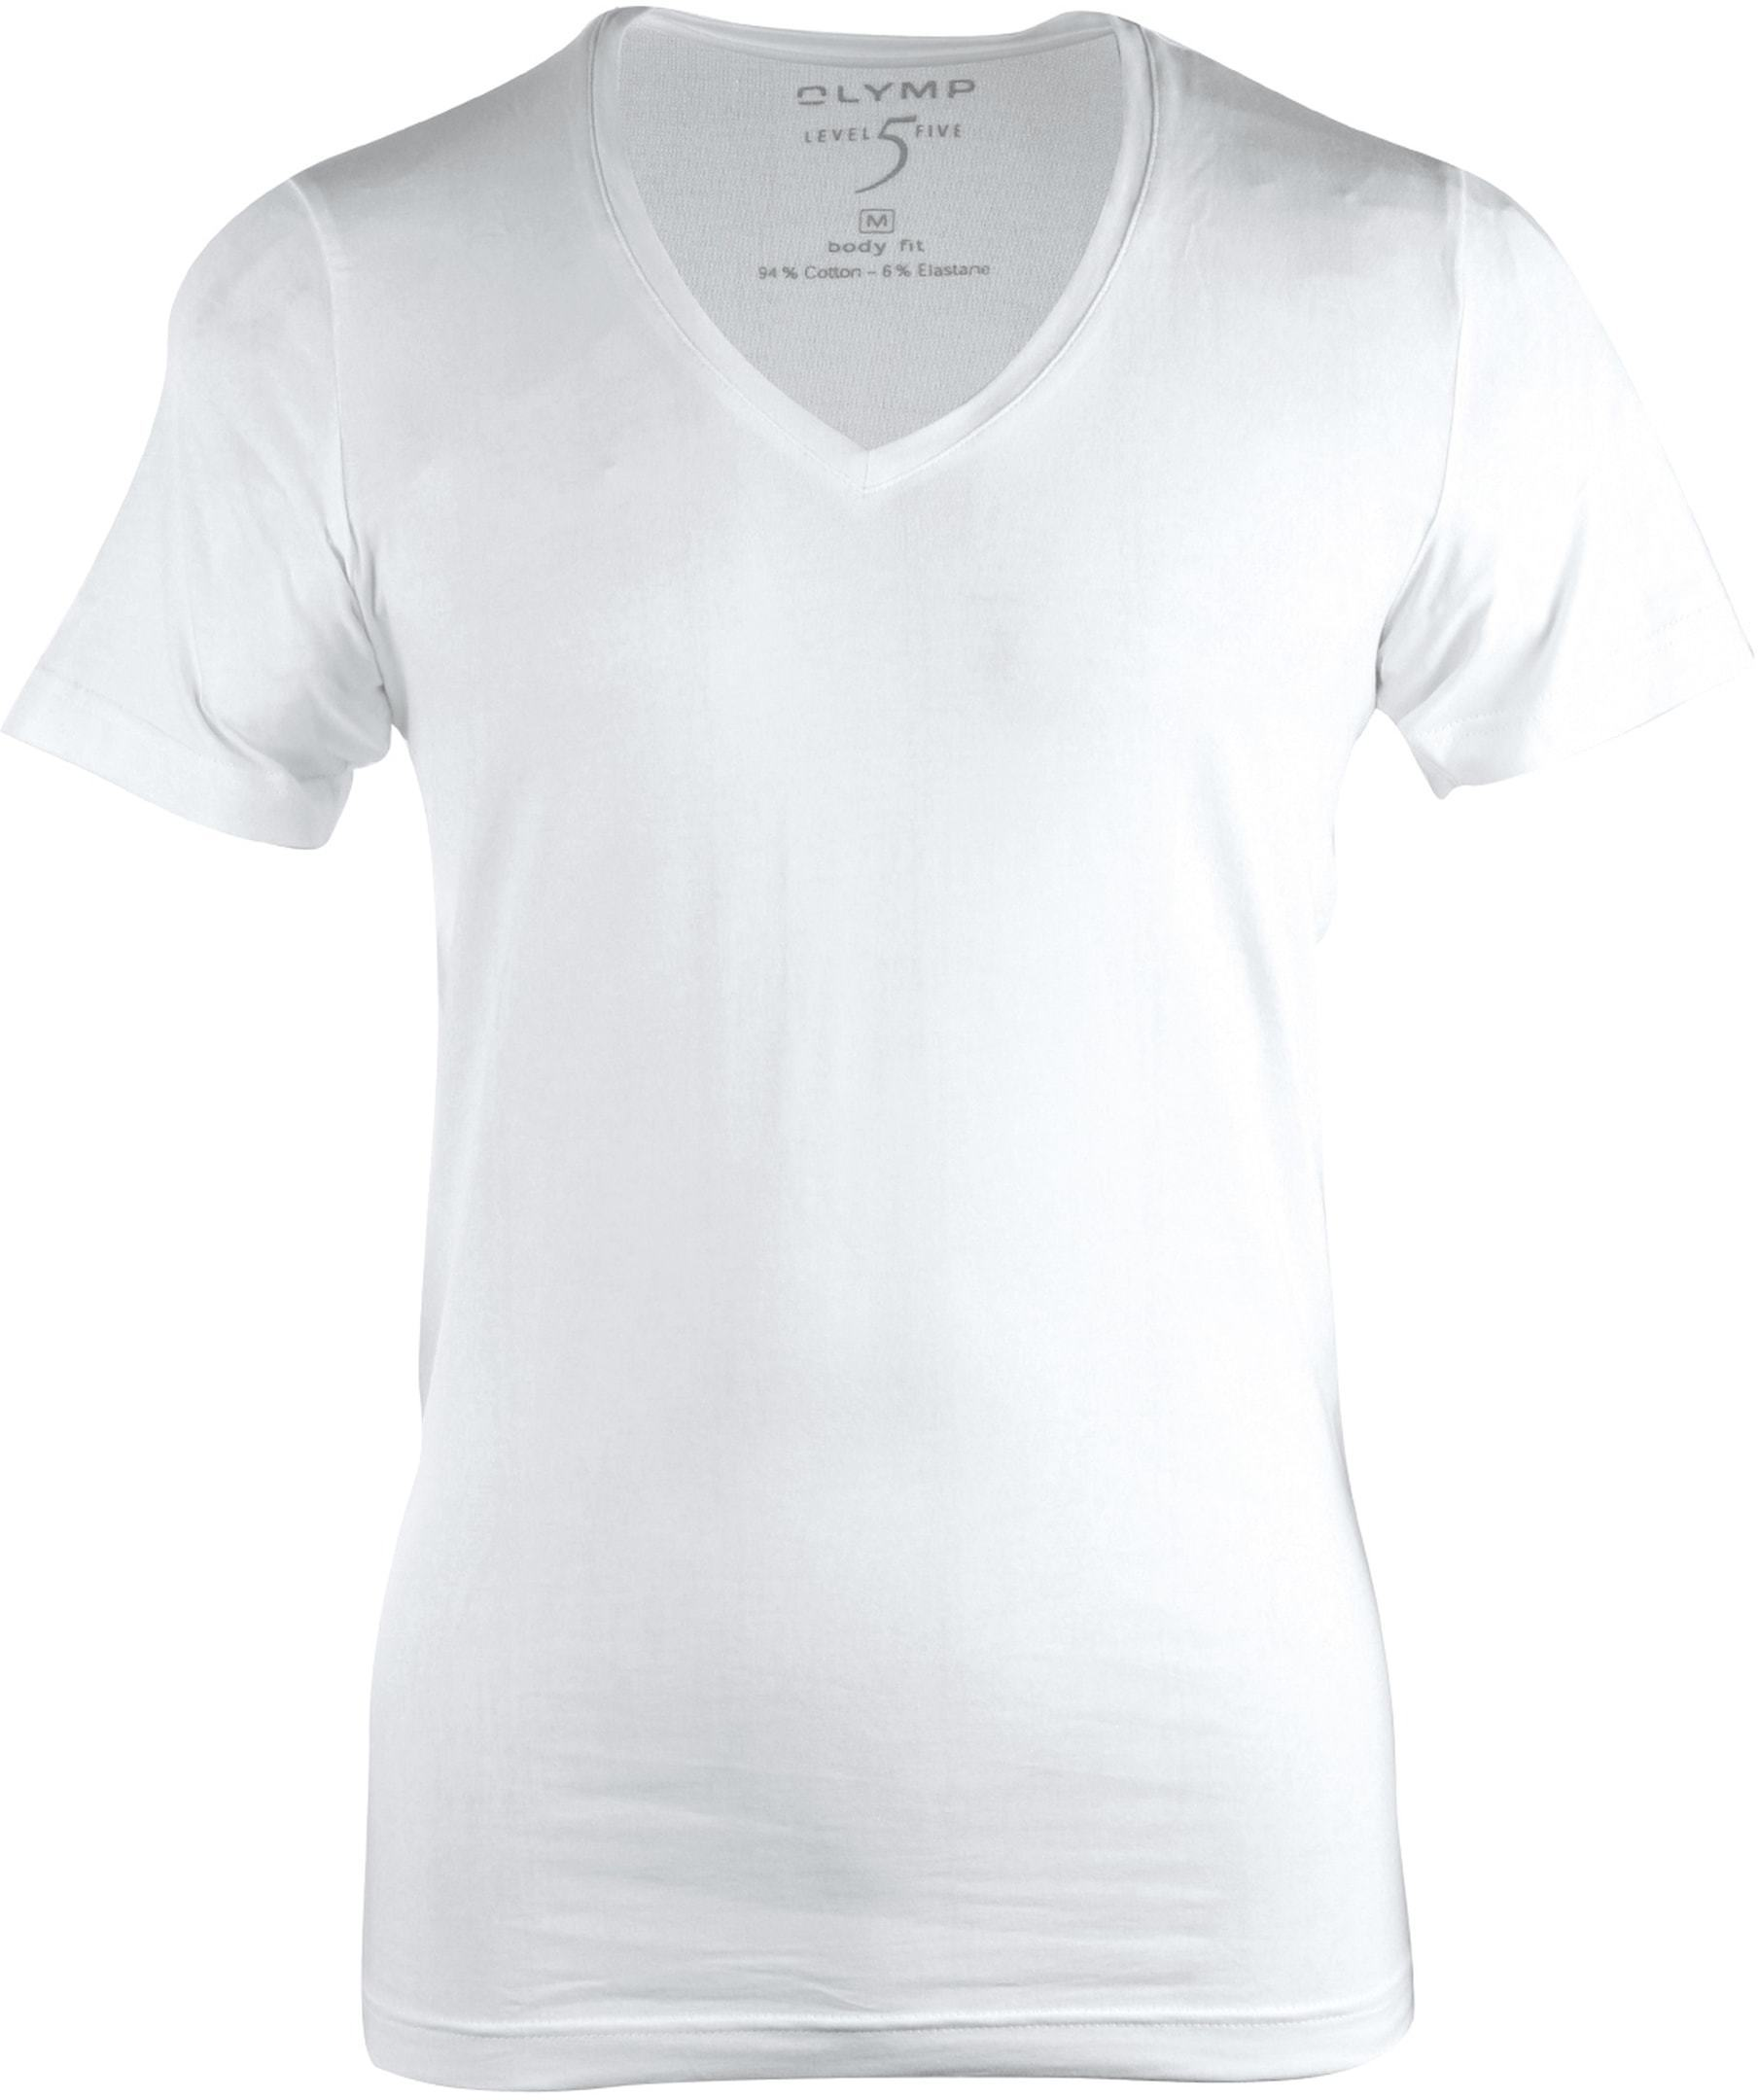 c9dd3861f5 Olymp T-shirt Deep V-Neck Stretch 080112